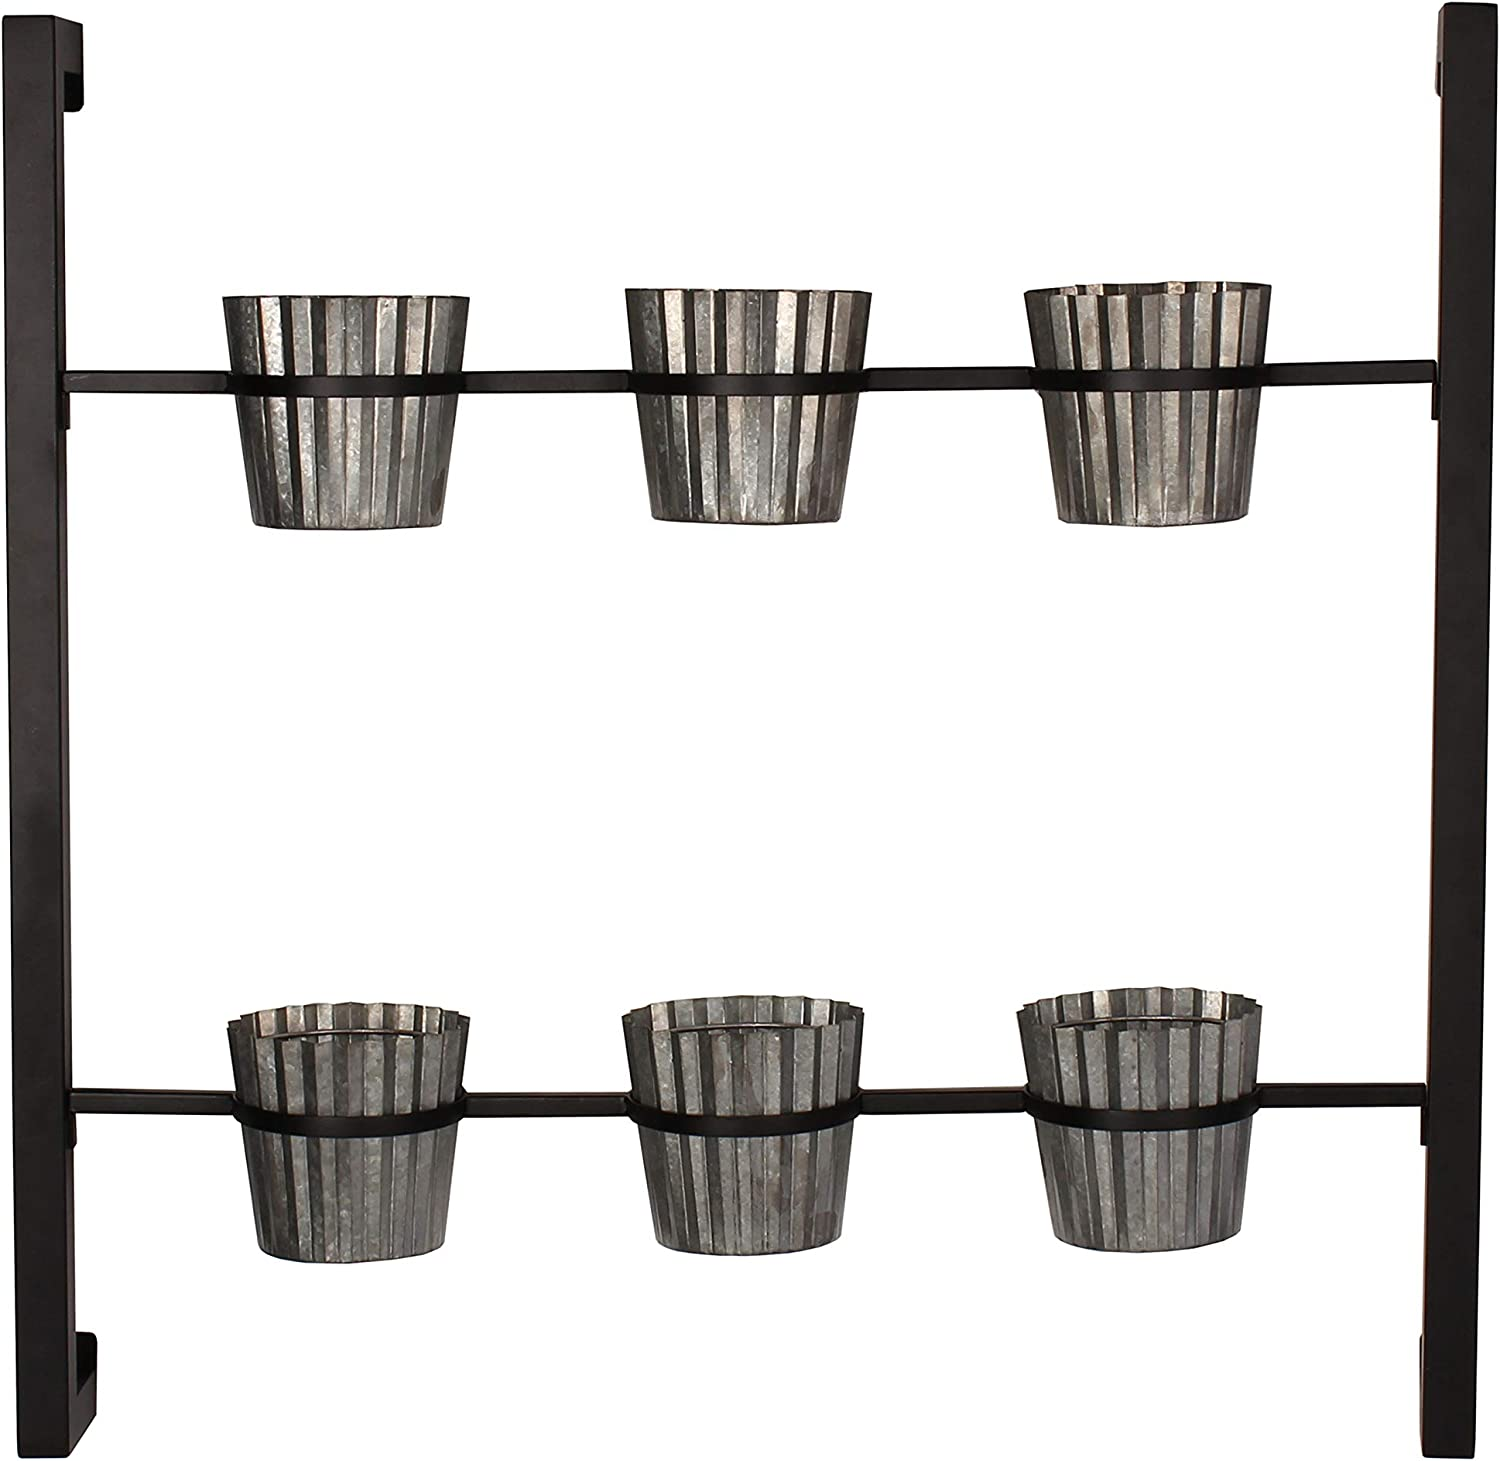 Kate and Laurel Groves Indoor Vertical Herb Garden Hanging 6 Pot Wall Planter, Black